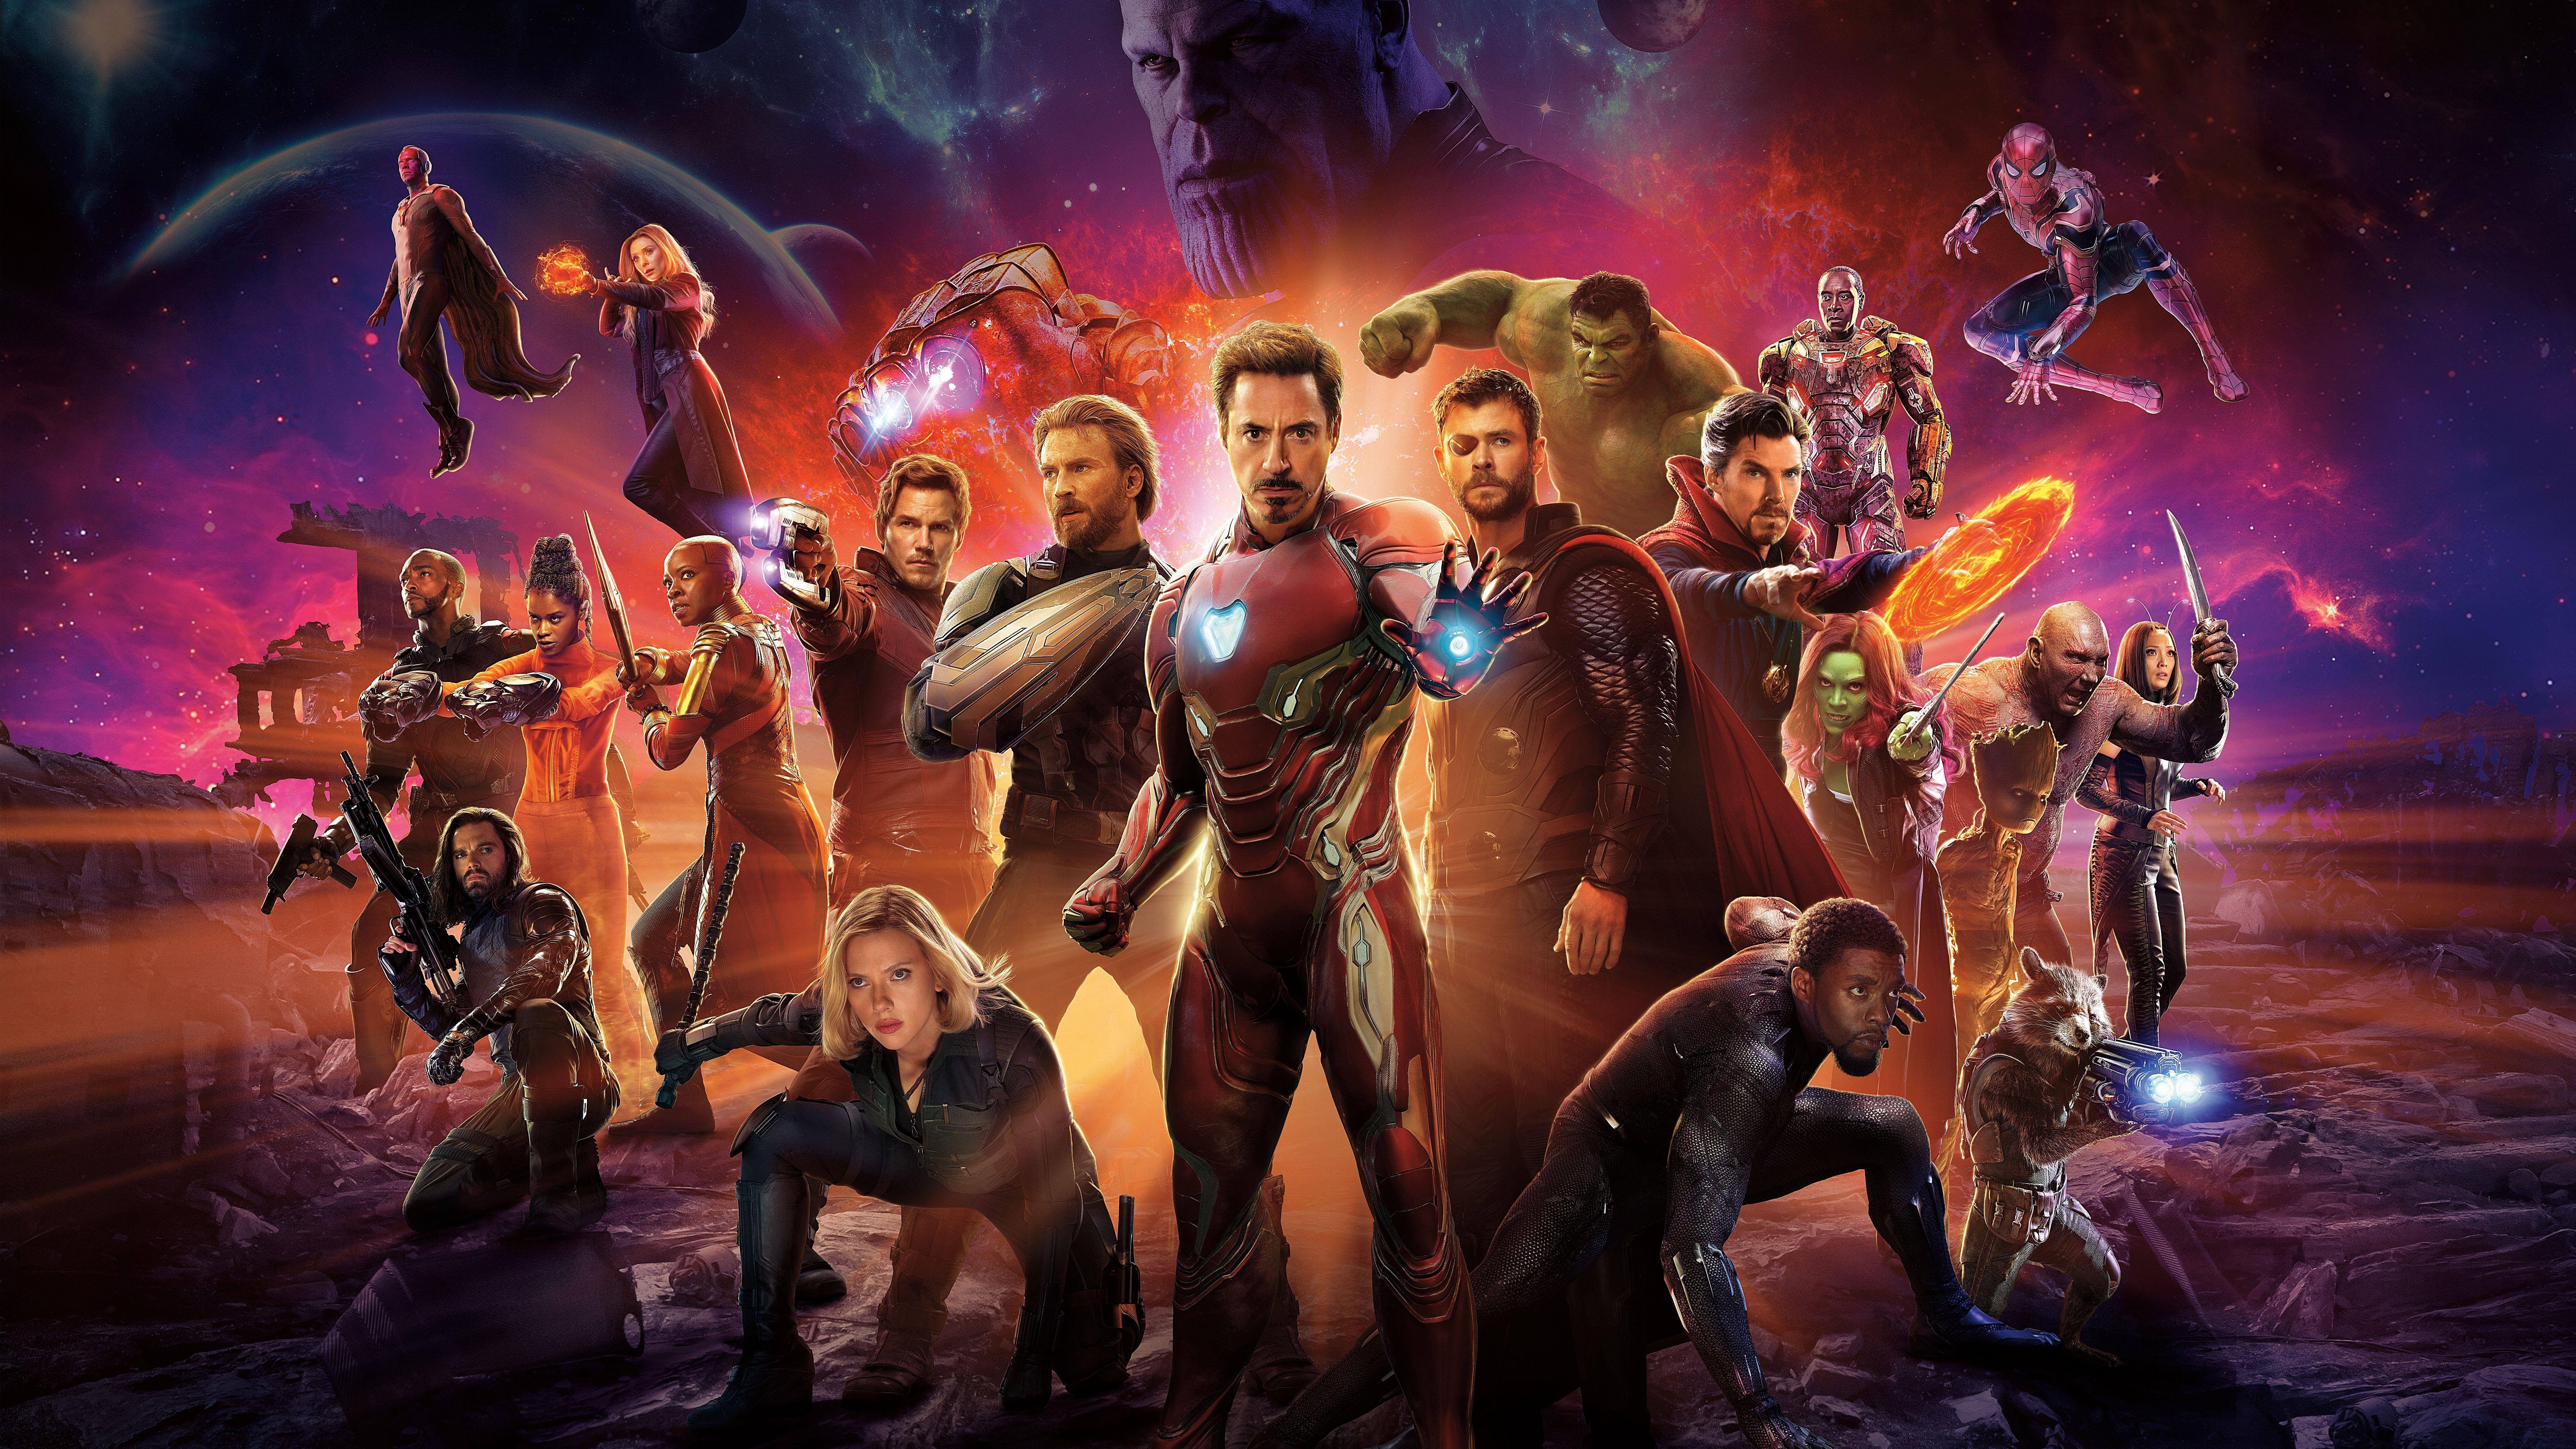 Wallpapers Avengers Infinity War Superheroes Cast 4K 8K Avengers